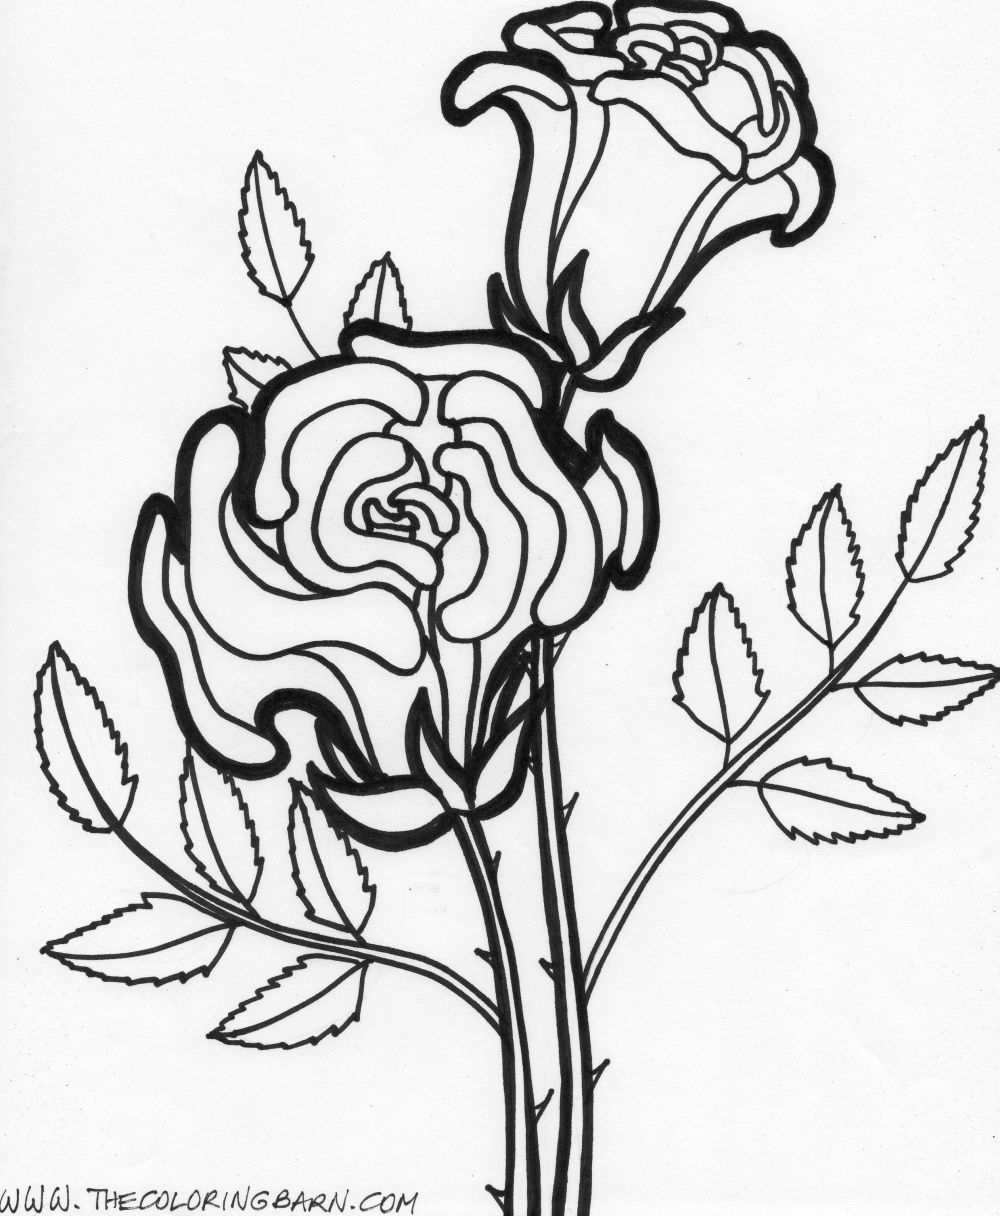 childrens coloring pages flowers flowers free to color for kids flowers kids coloring pages flowers coloring pages childrens